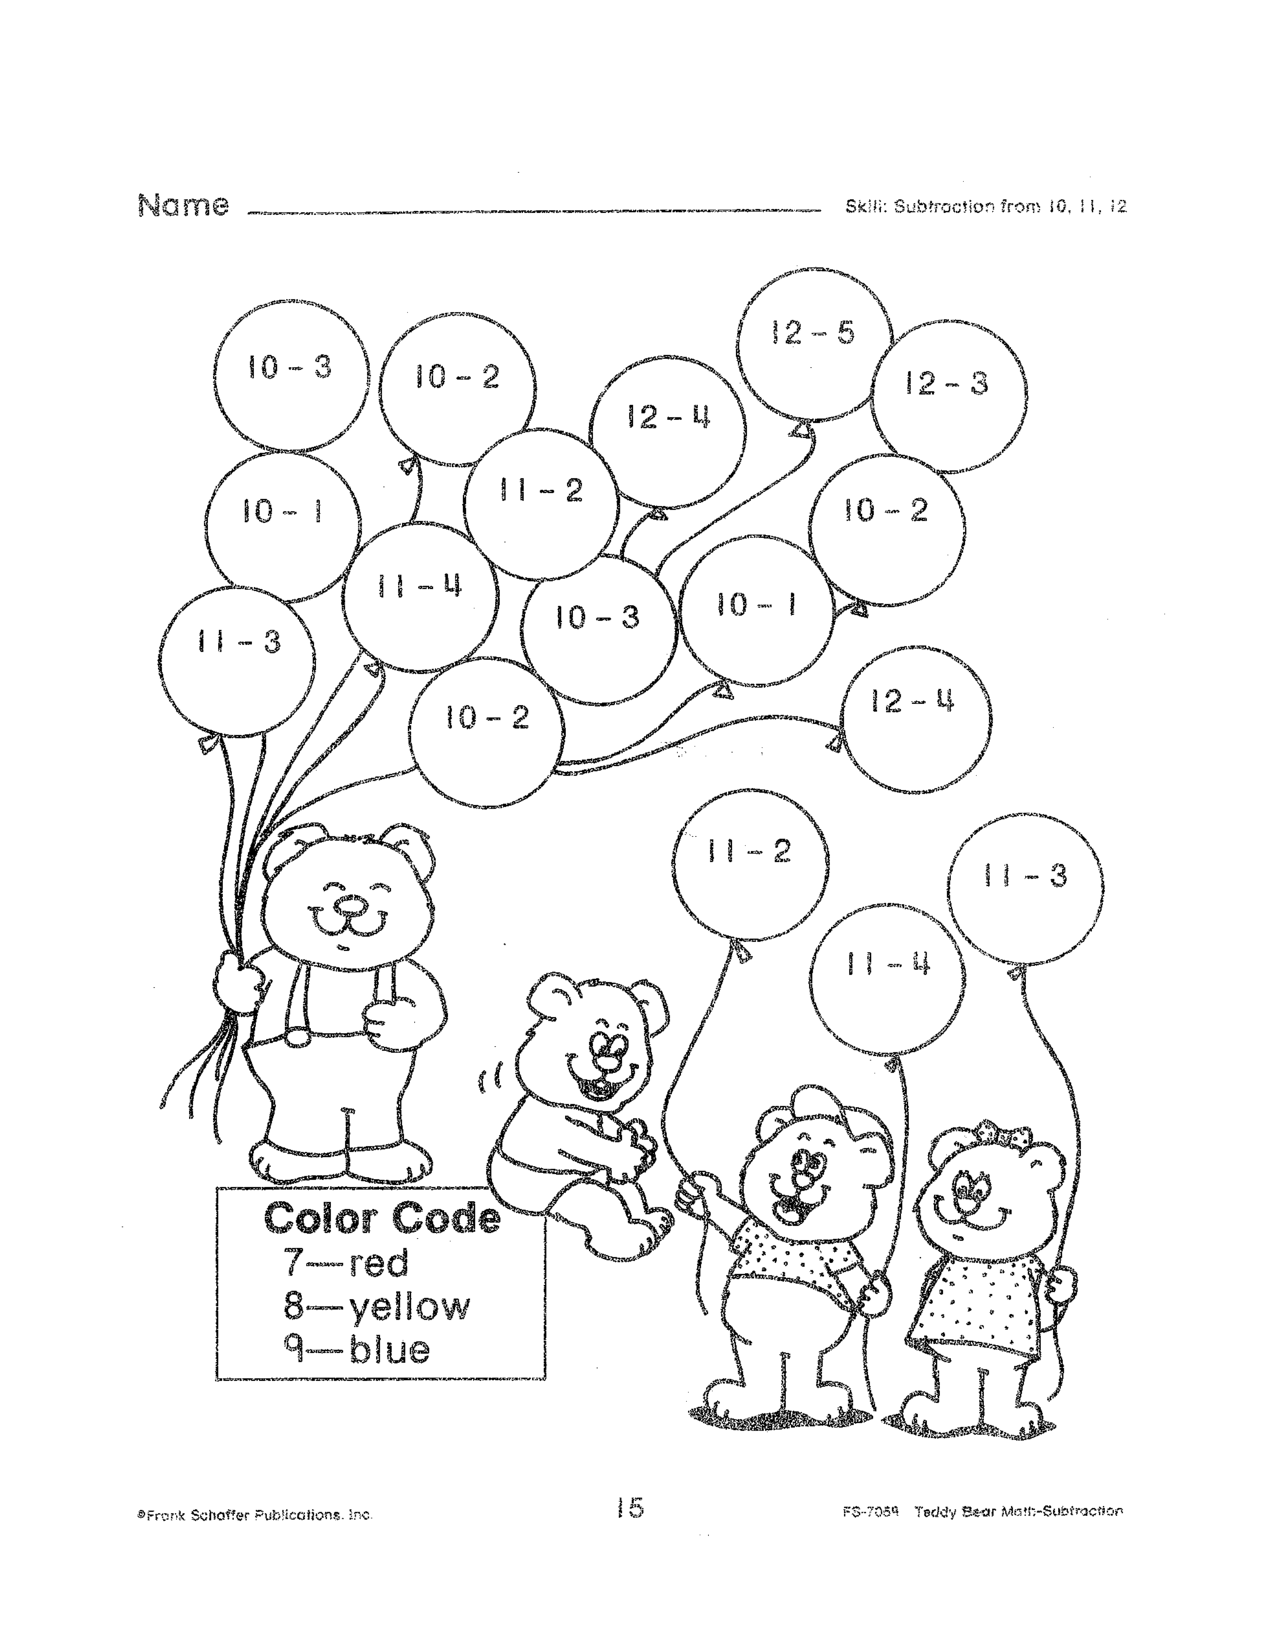 Worksheets Printable Worksheets For 2nd Grade 2nd grade subtraction 2 digit low numbers kg math review worksheetsprintable